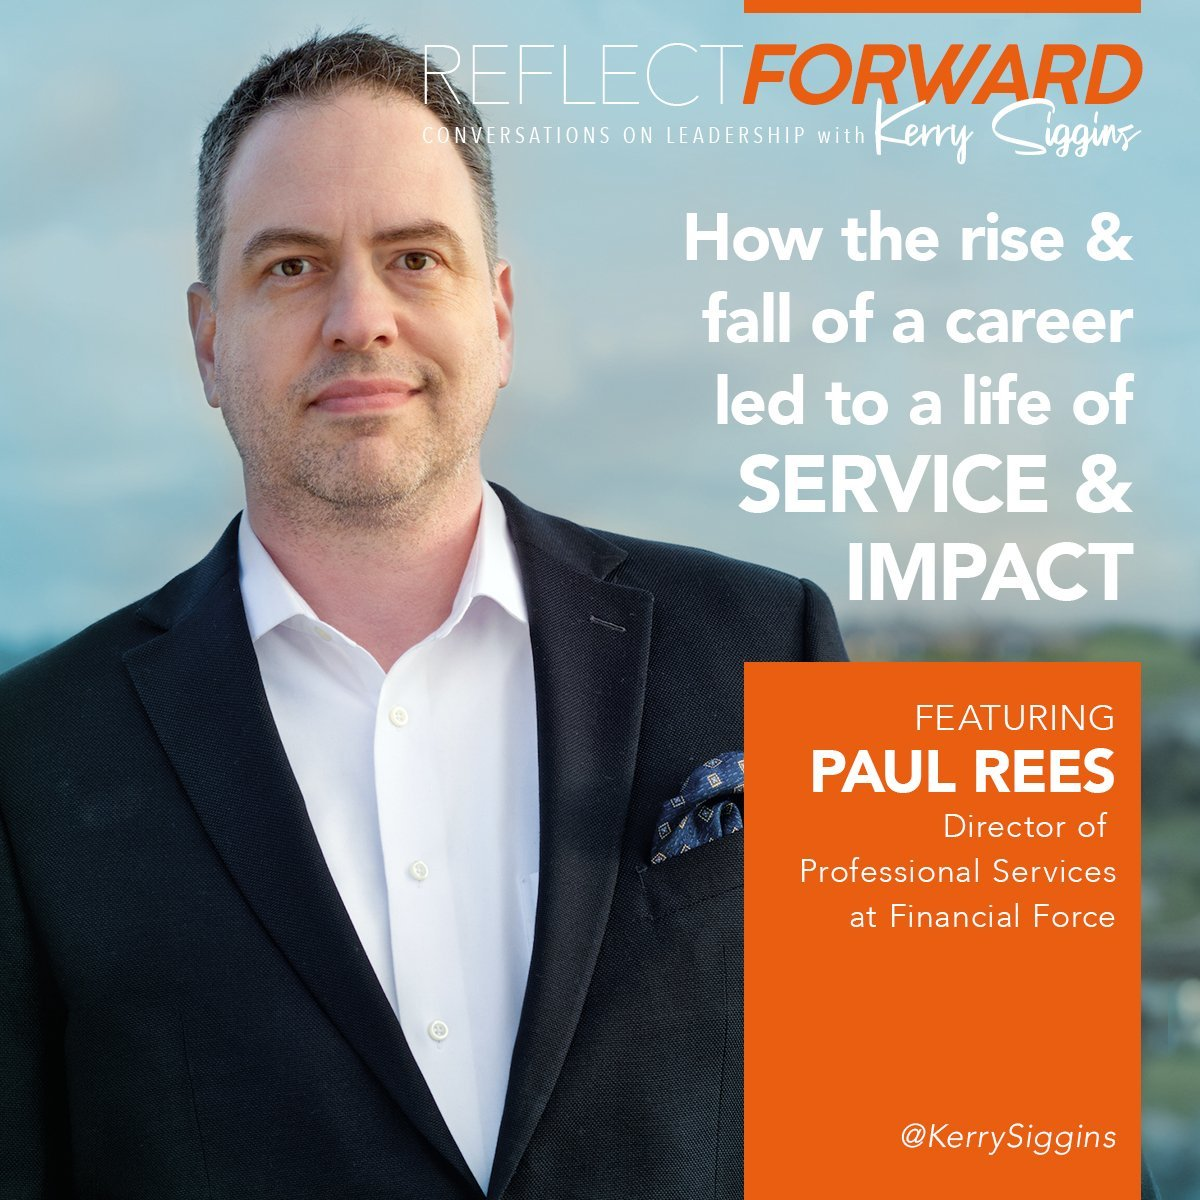 Paul Rees; how the rise and fall of a career led him to a life of service and impact